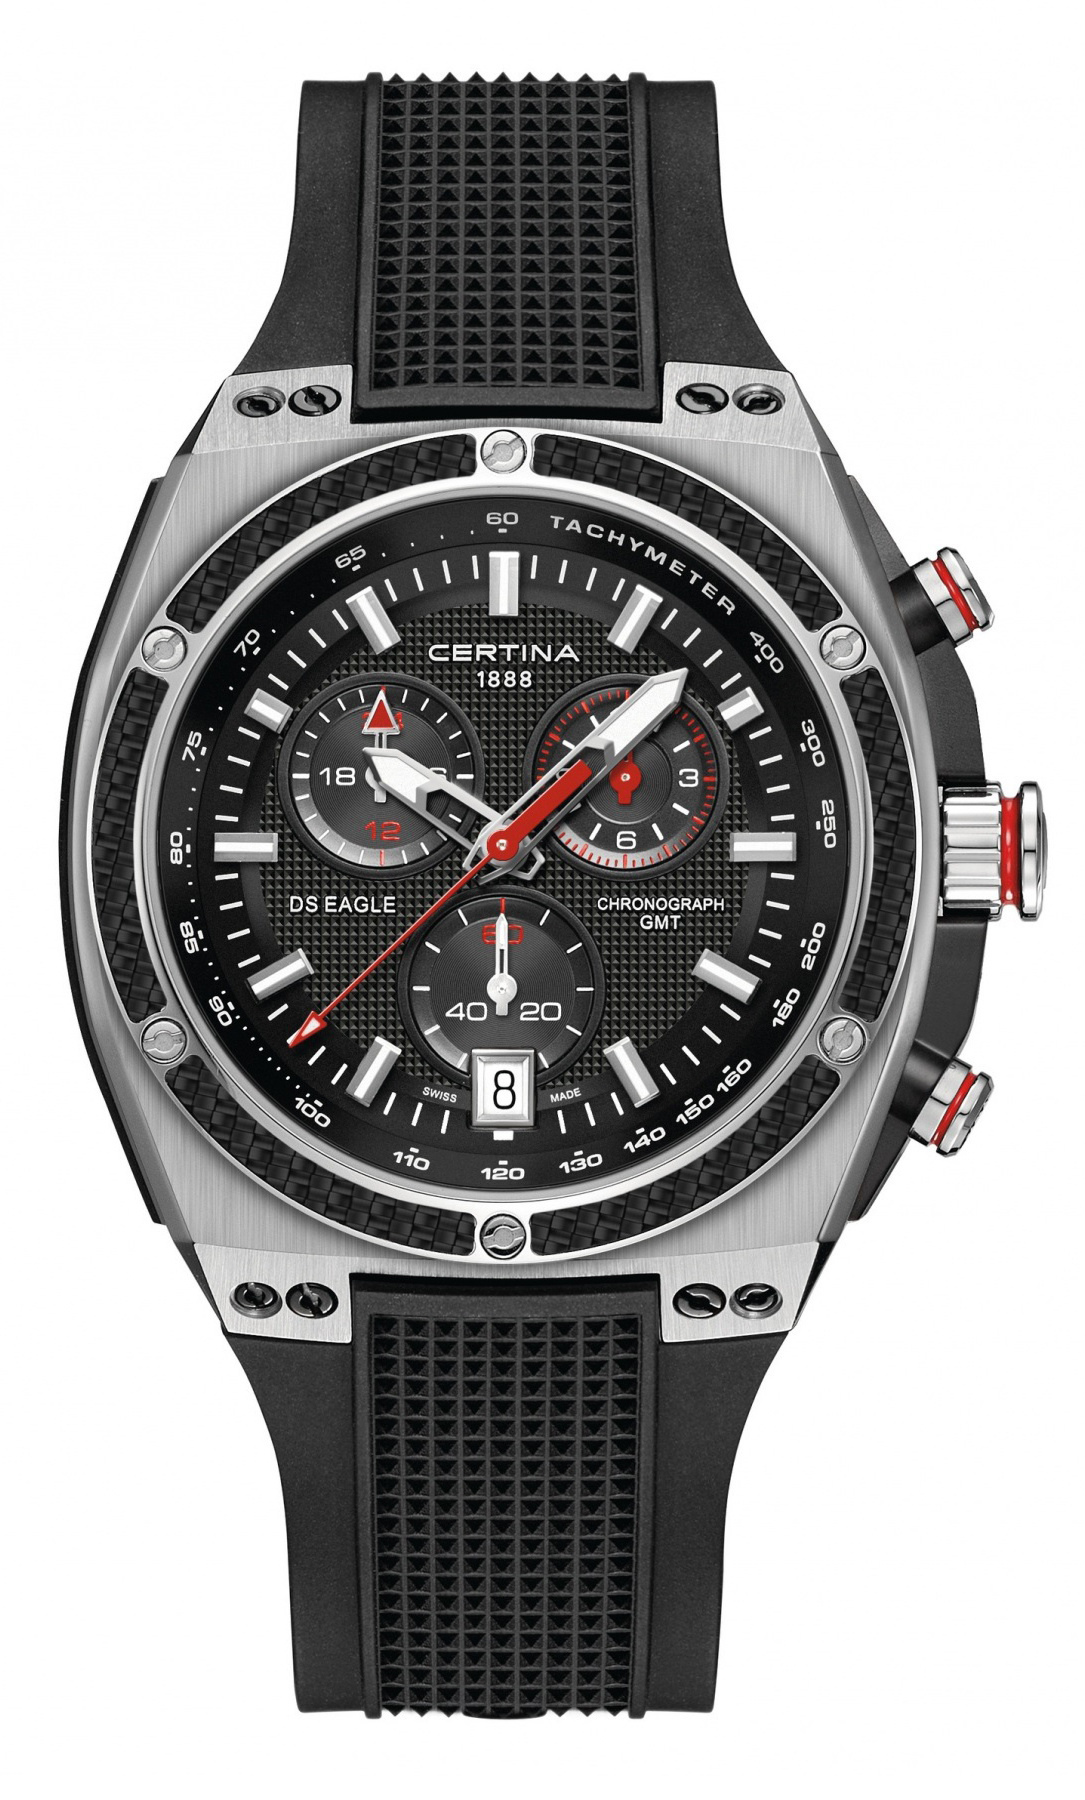 Certina - Horloge Heren - DS Eagle GMT - C023.739.27.051.00-1